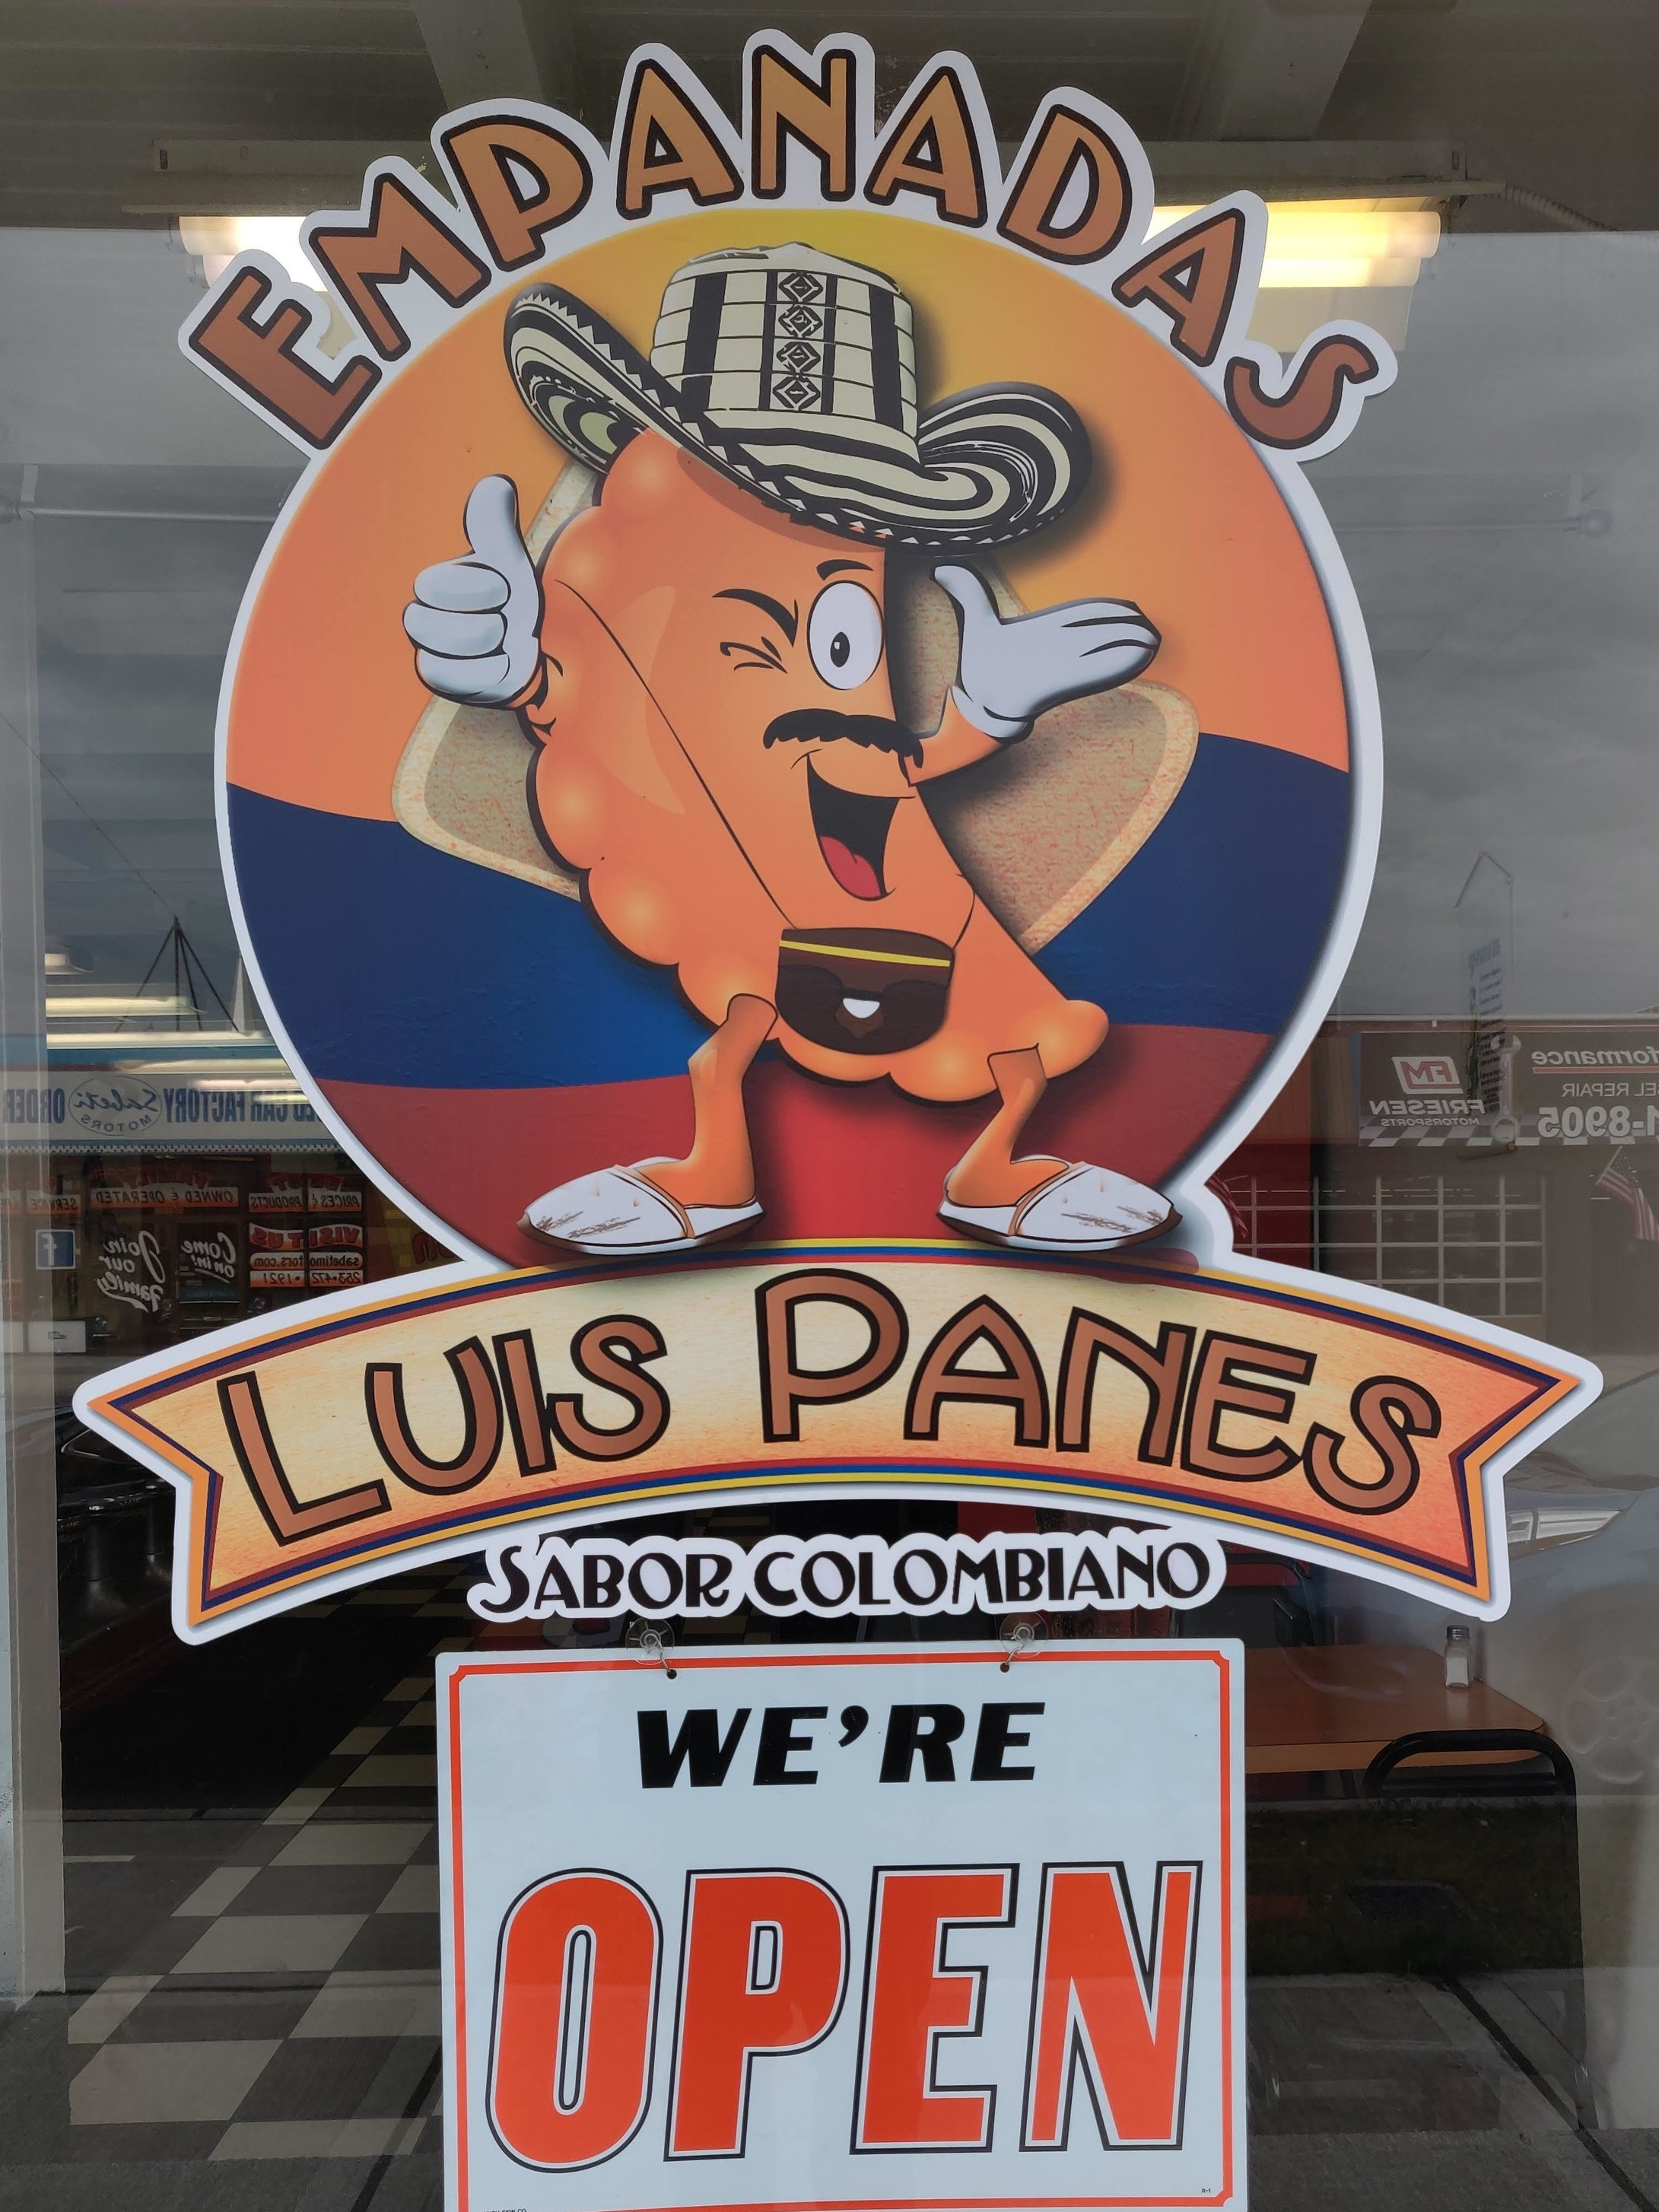 Special thanks to Don Luis of Luis Panes Empanadas, 5640 South Tacoma Way, Tacoma